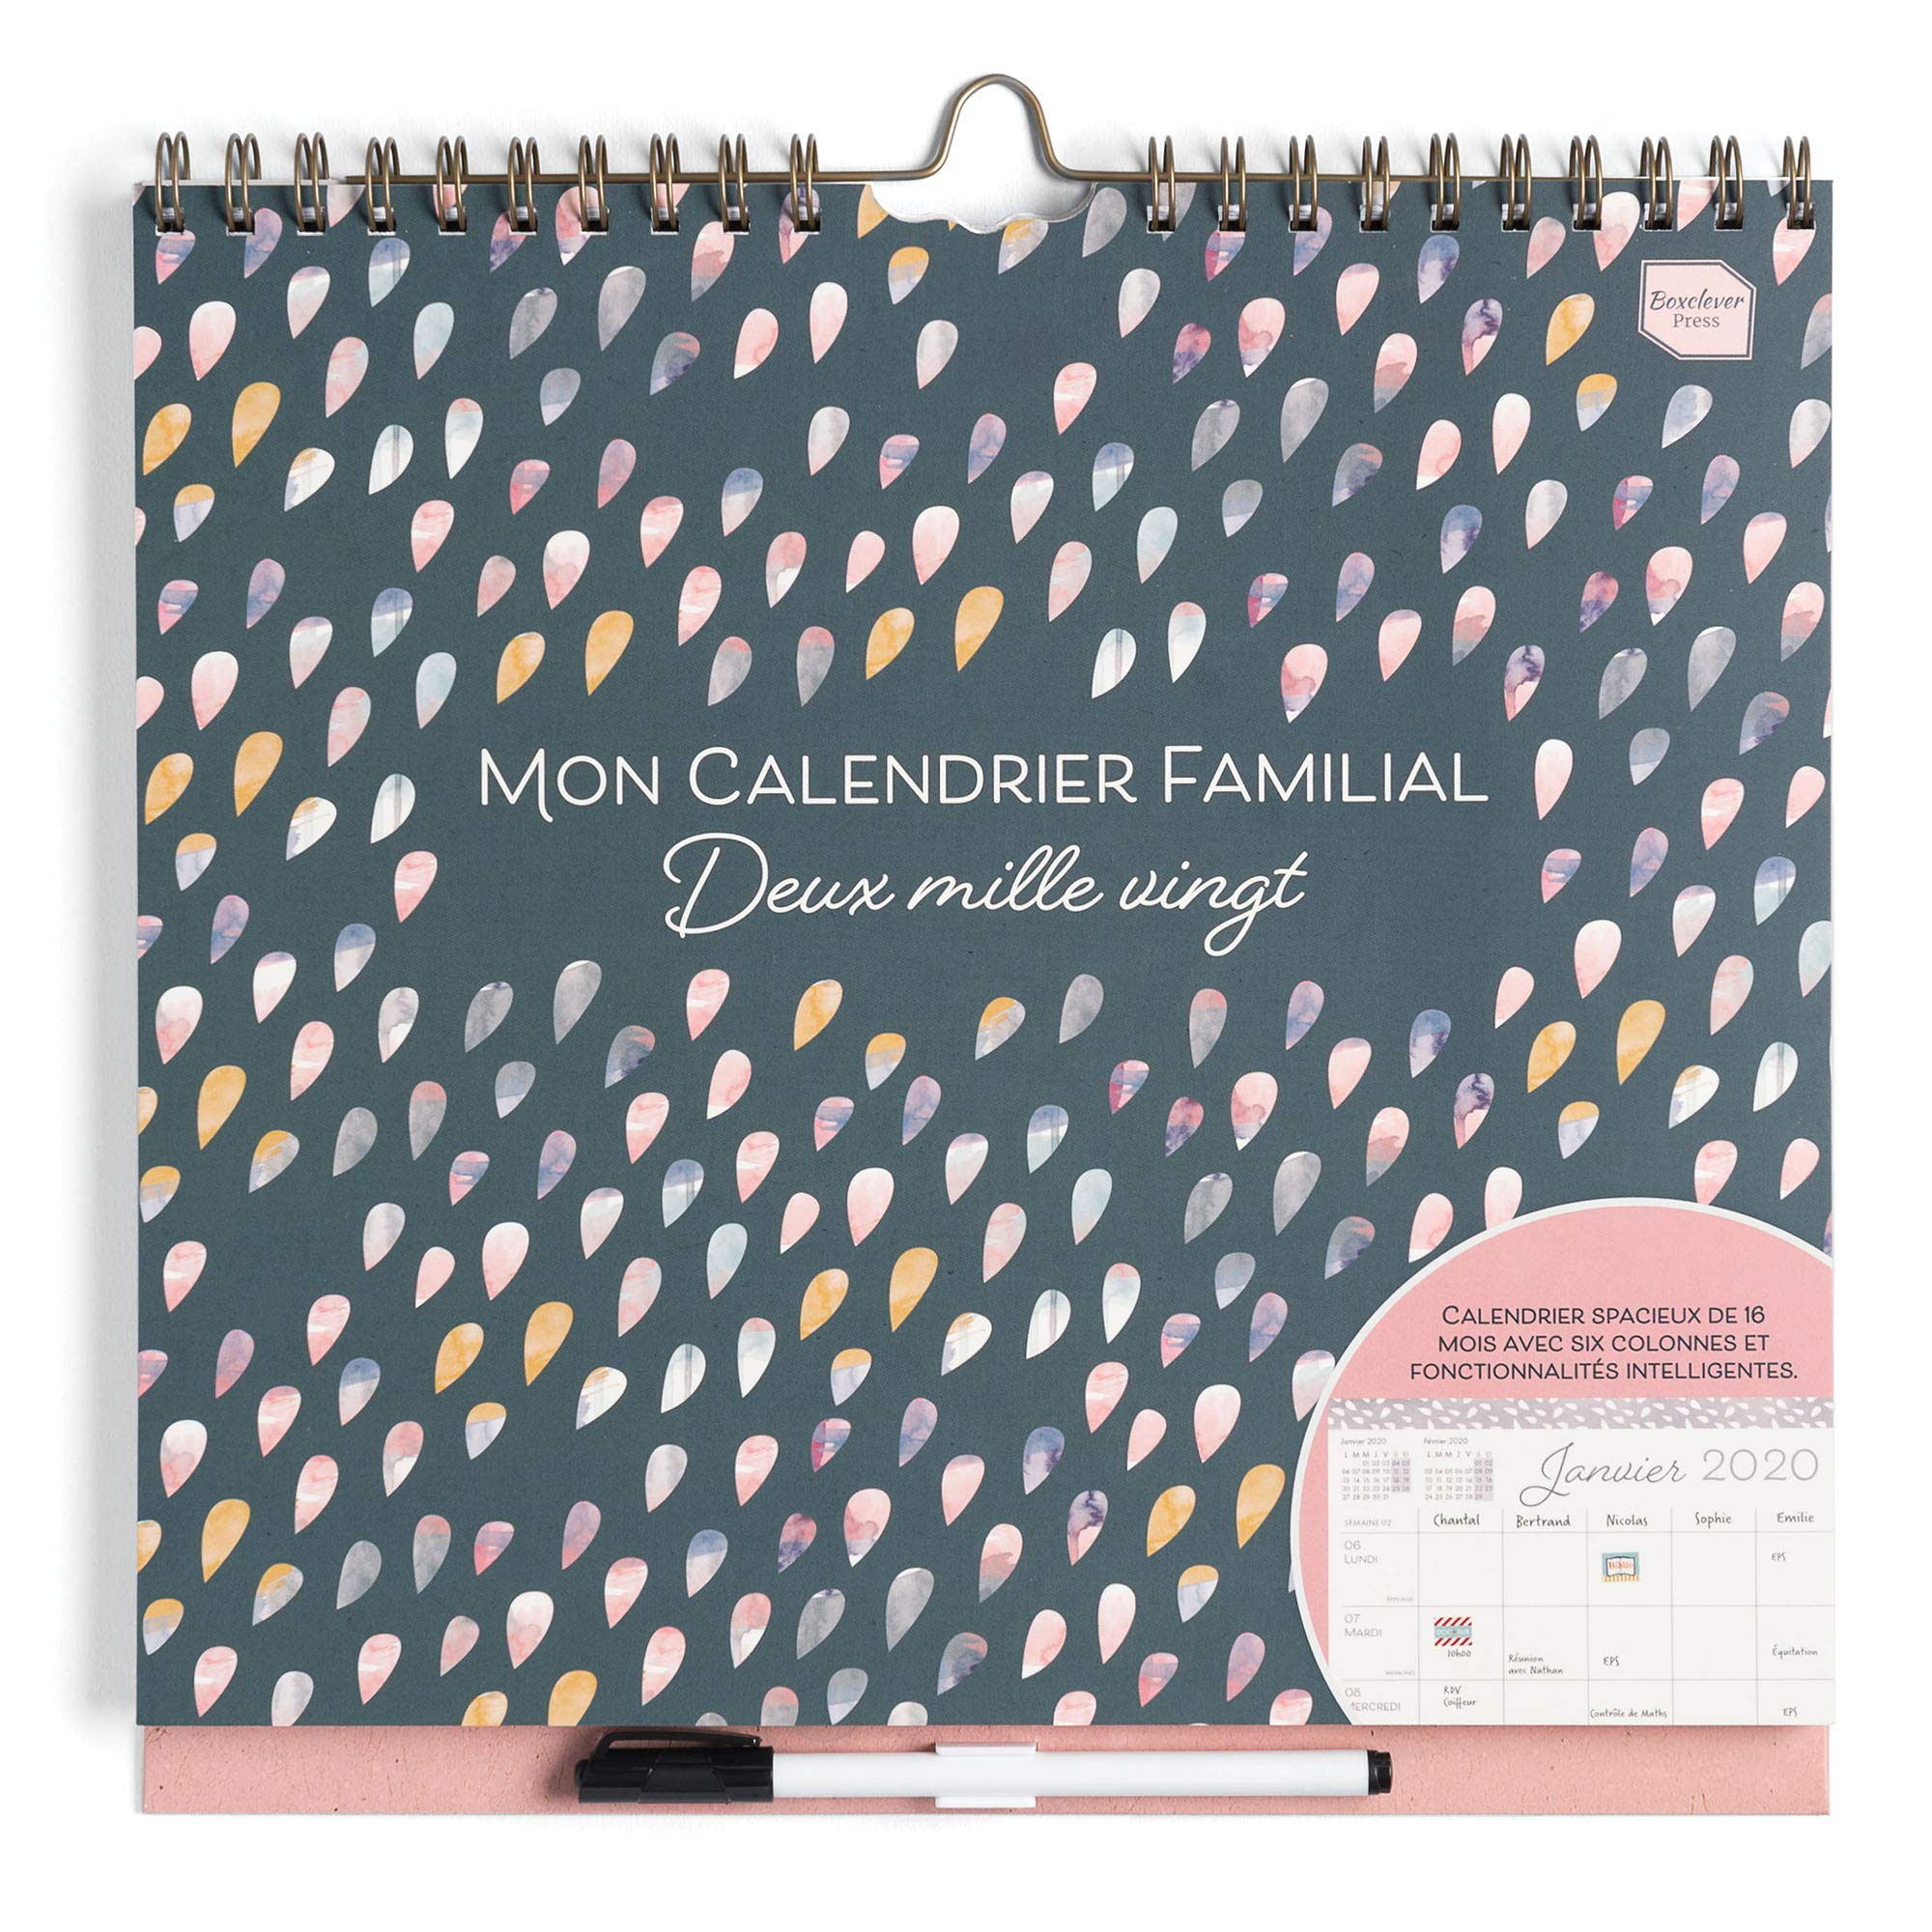 Grand Calendrier Mural Pour Planning.Boxclever Press Mon Calendrier Familial 2019 2020 Calendrier 2020 Organiseur Familial 2019 2020 Planning Familial Calendrier Mural 2020 Avec 6